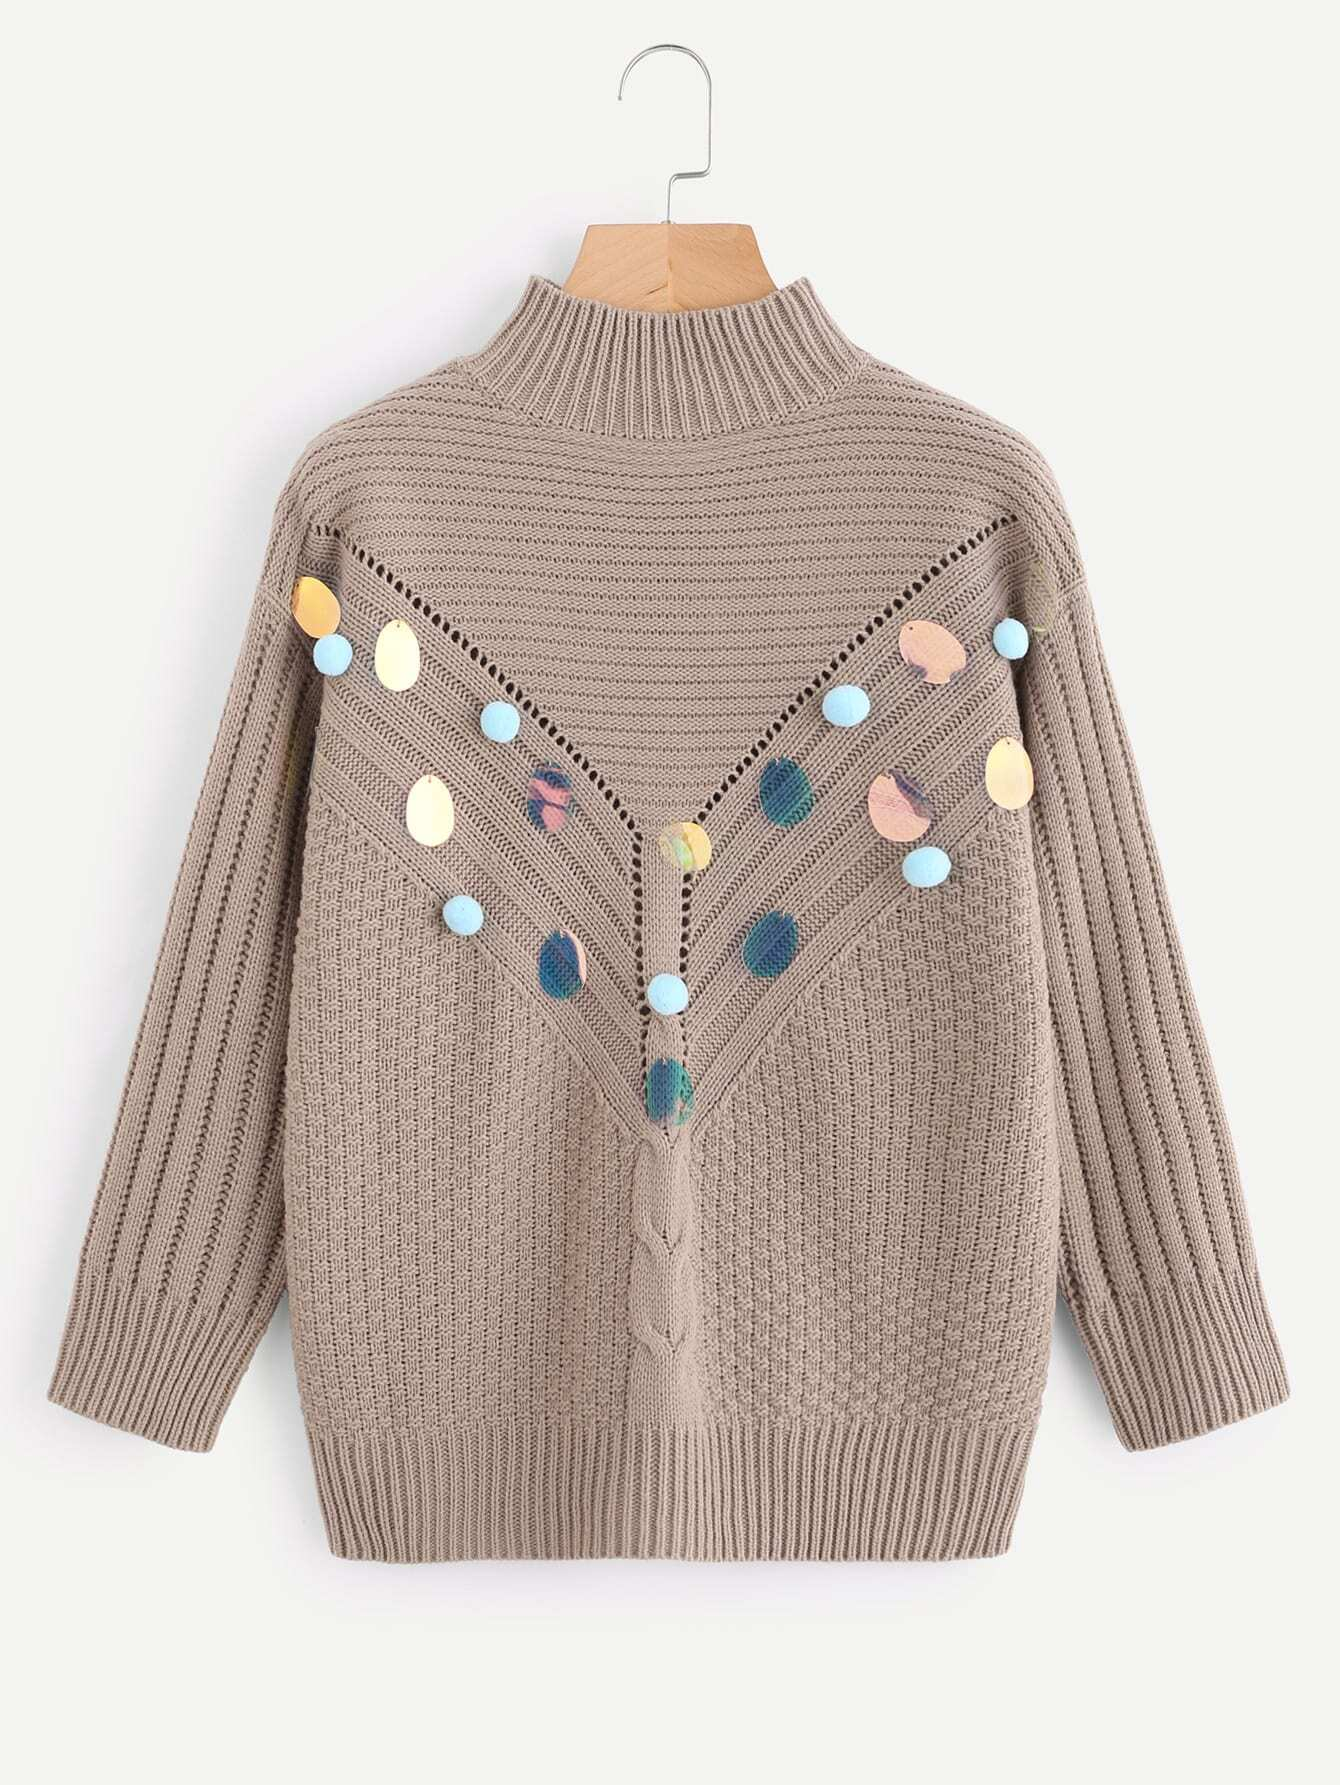 Sequin And Pompom Embellished Eyelet Mixed Knit Jumper rakesh kumar tiwari and rajendra prasad ojha conformation and stability of mixed dna triplex